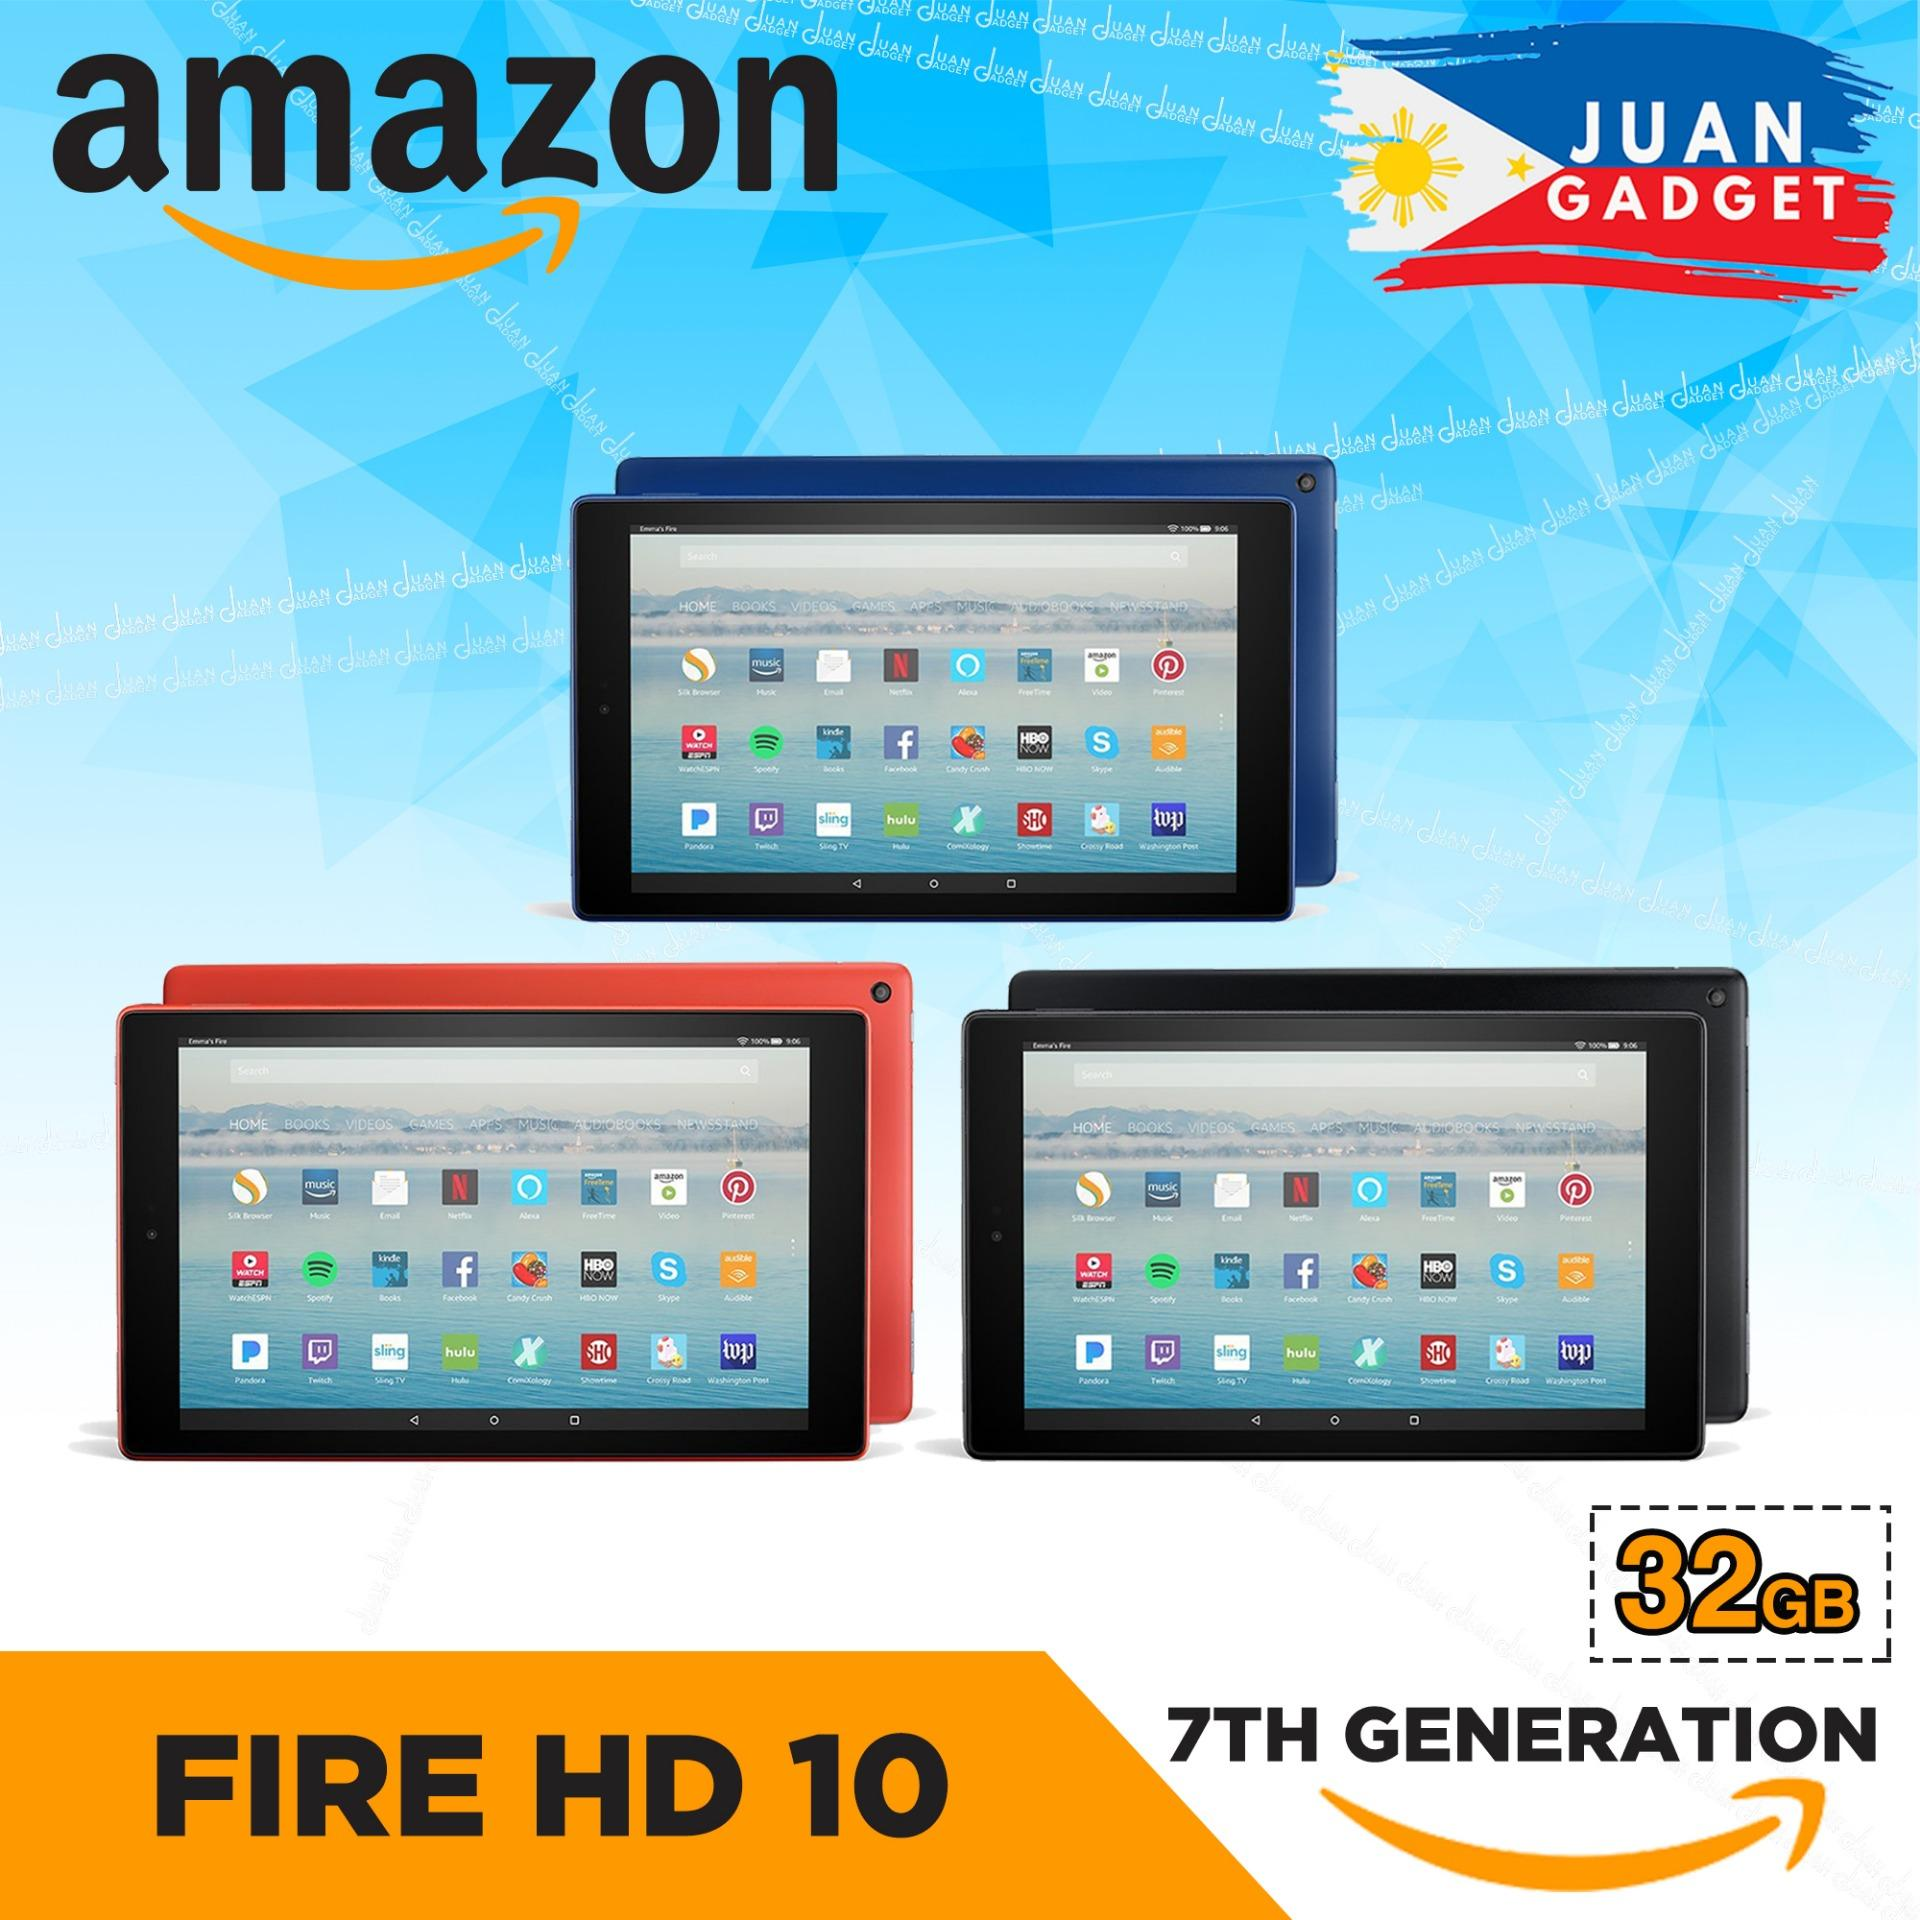 Amazon All-New Fire HD 10 Tablet with Alexa Hands-Free, 10 1